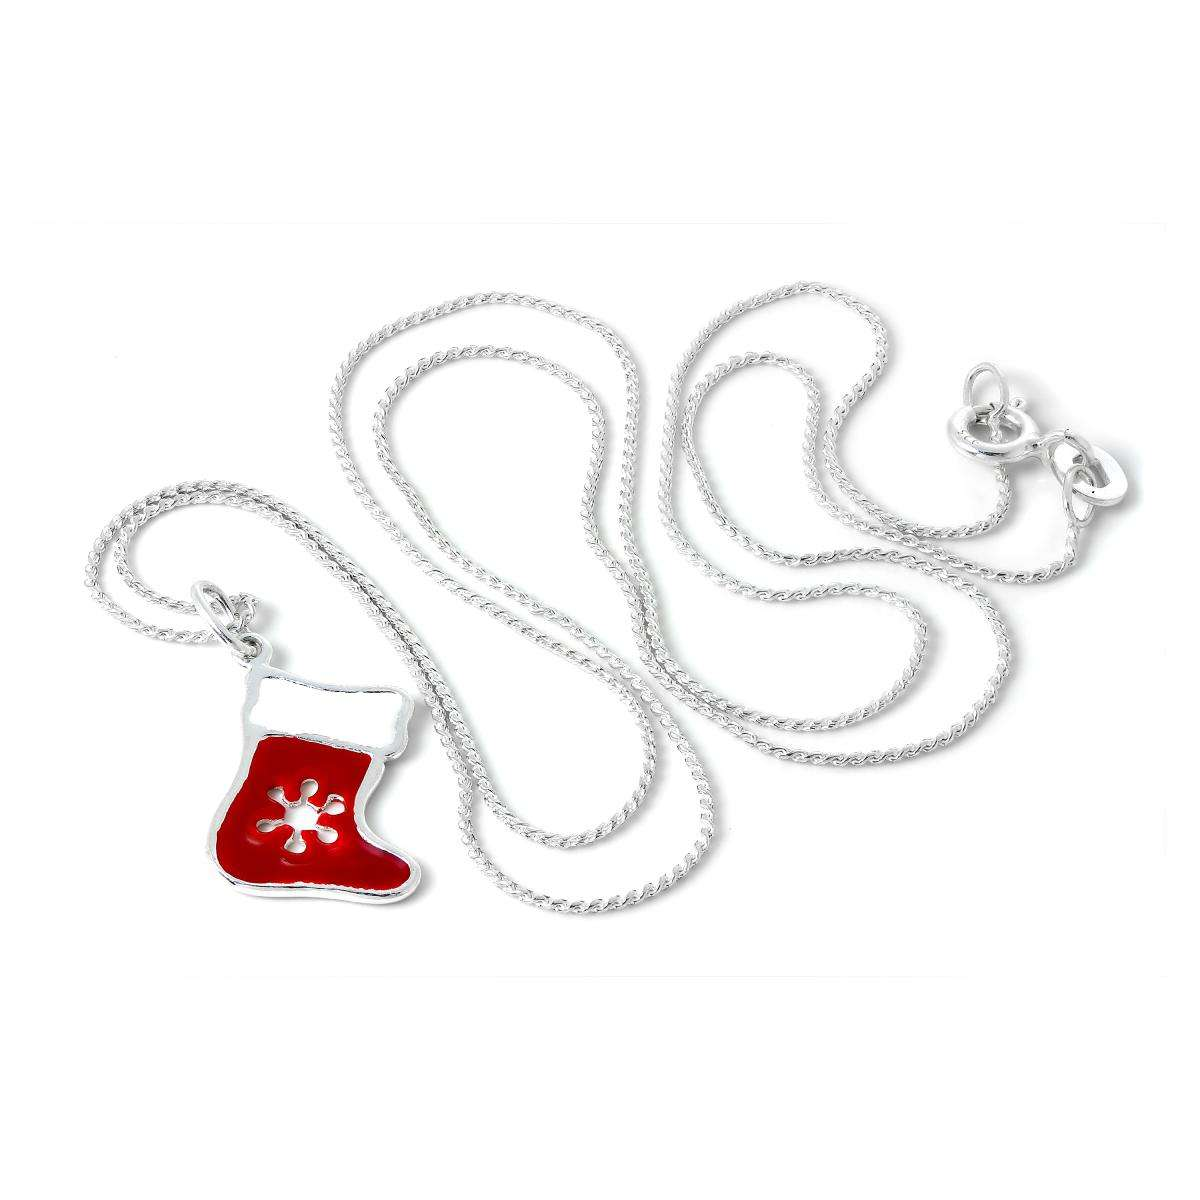 Alterative image for Sterling Silver Enamelled Red Christmas Stocking Pendant Necklace 16 - 22 Inches